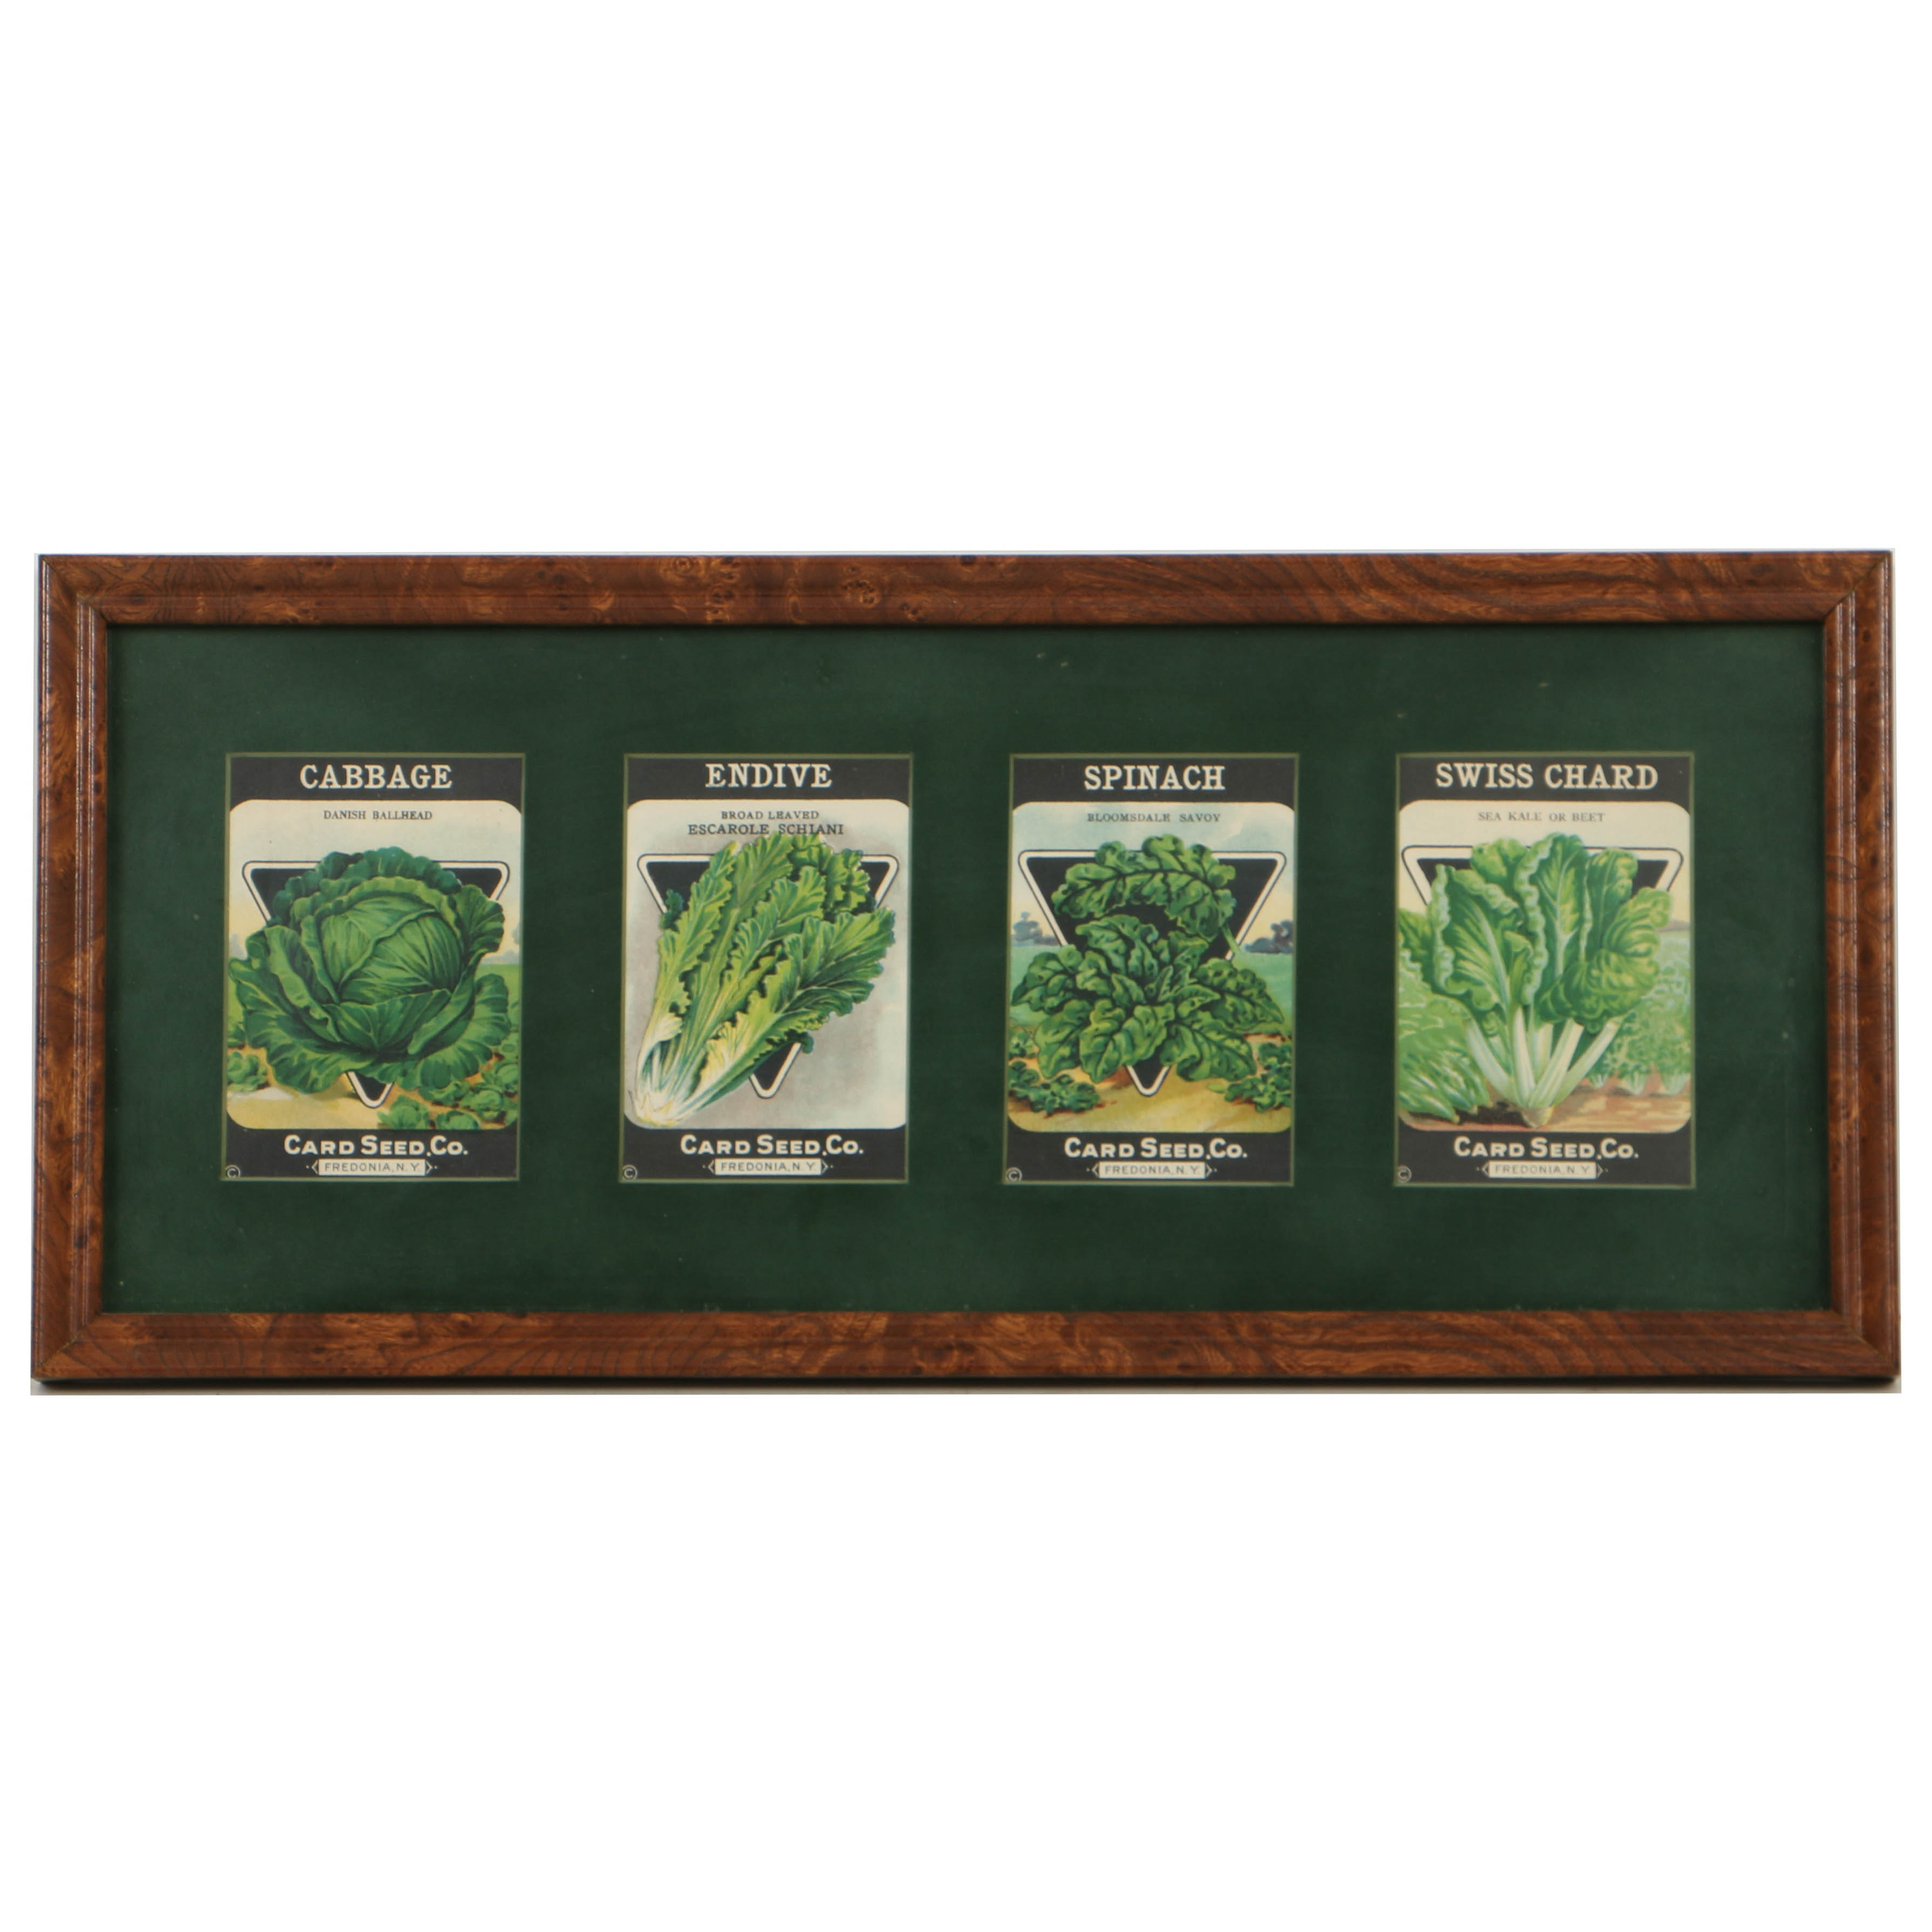 Early 20th-Century Card Seed Co. Chromolithograph Seed Packets